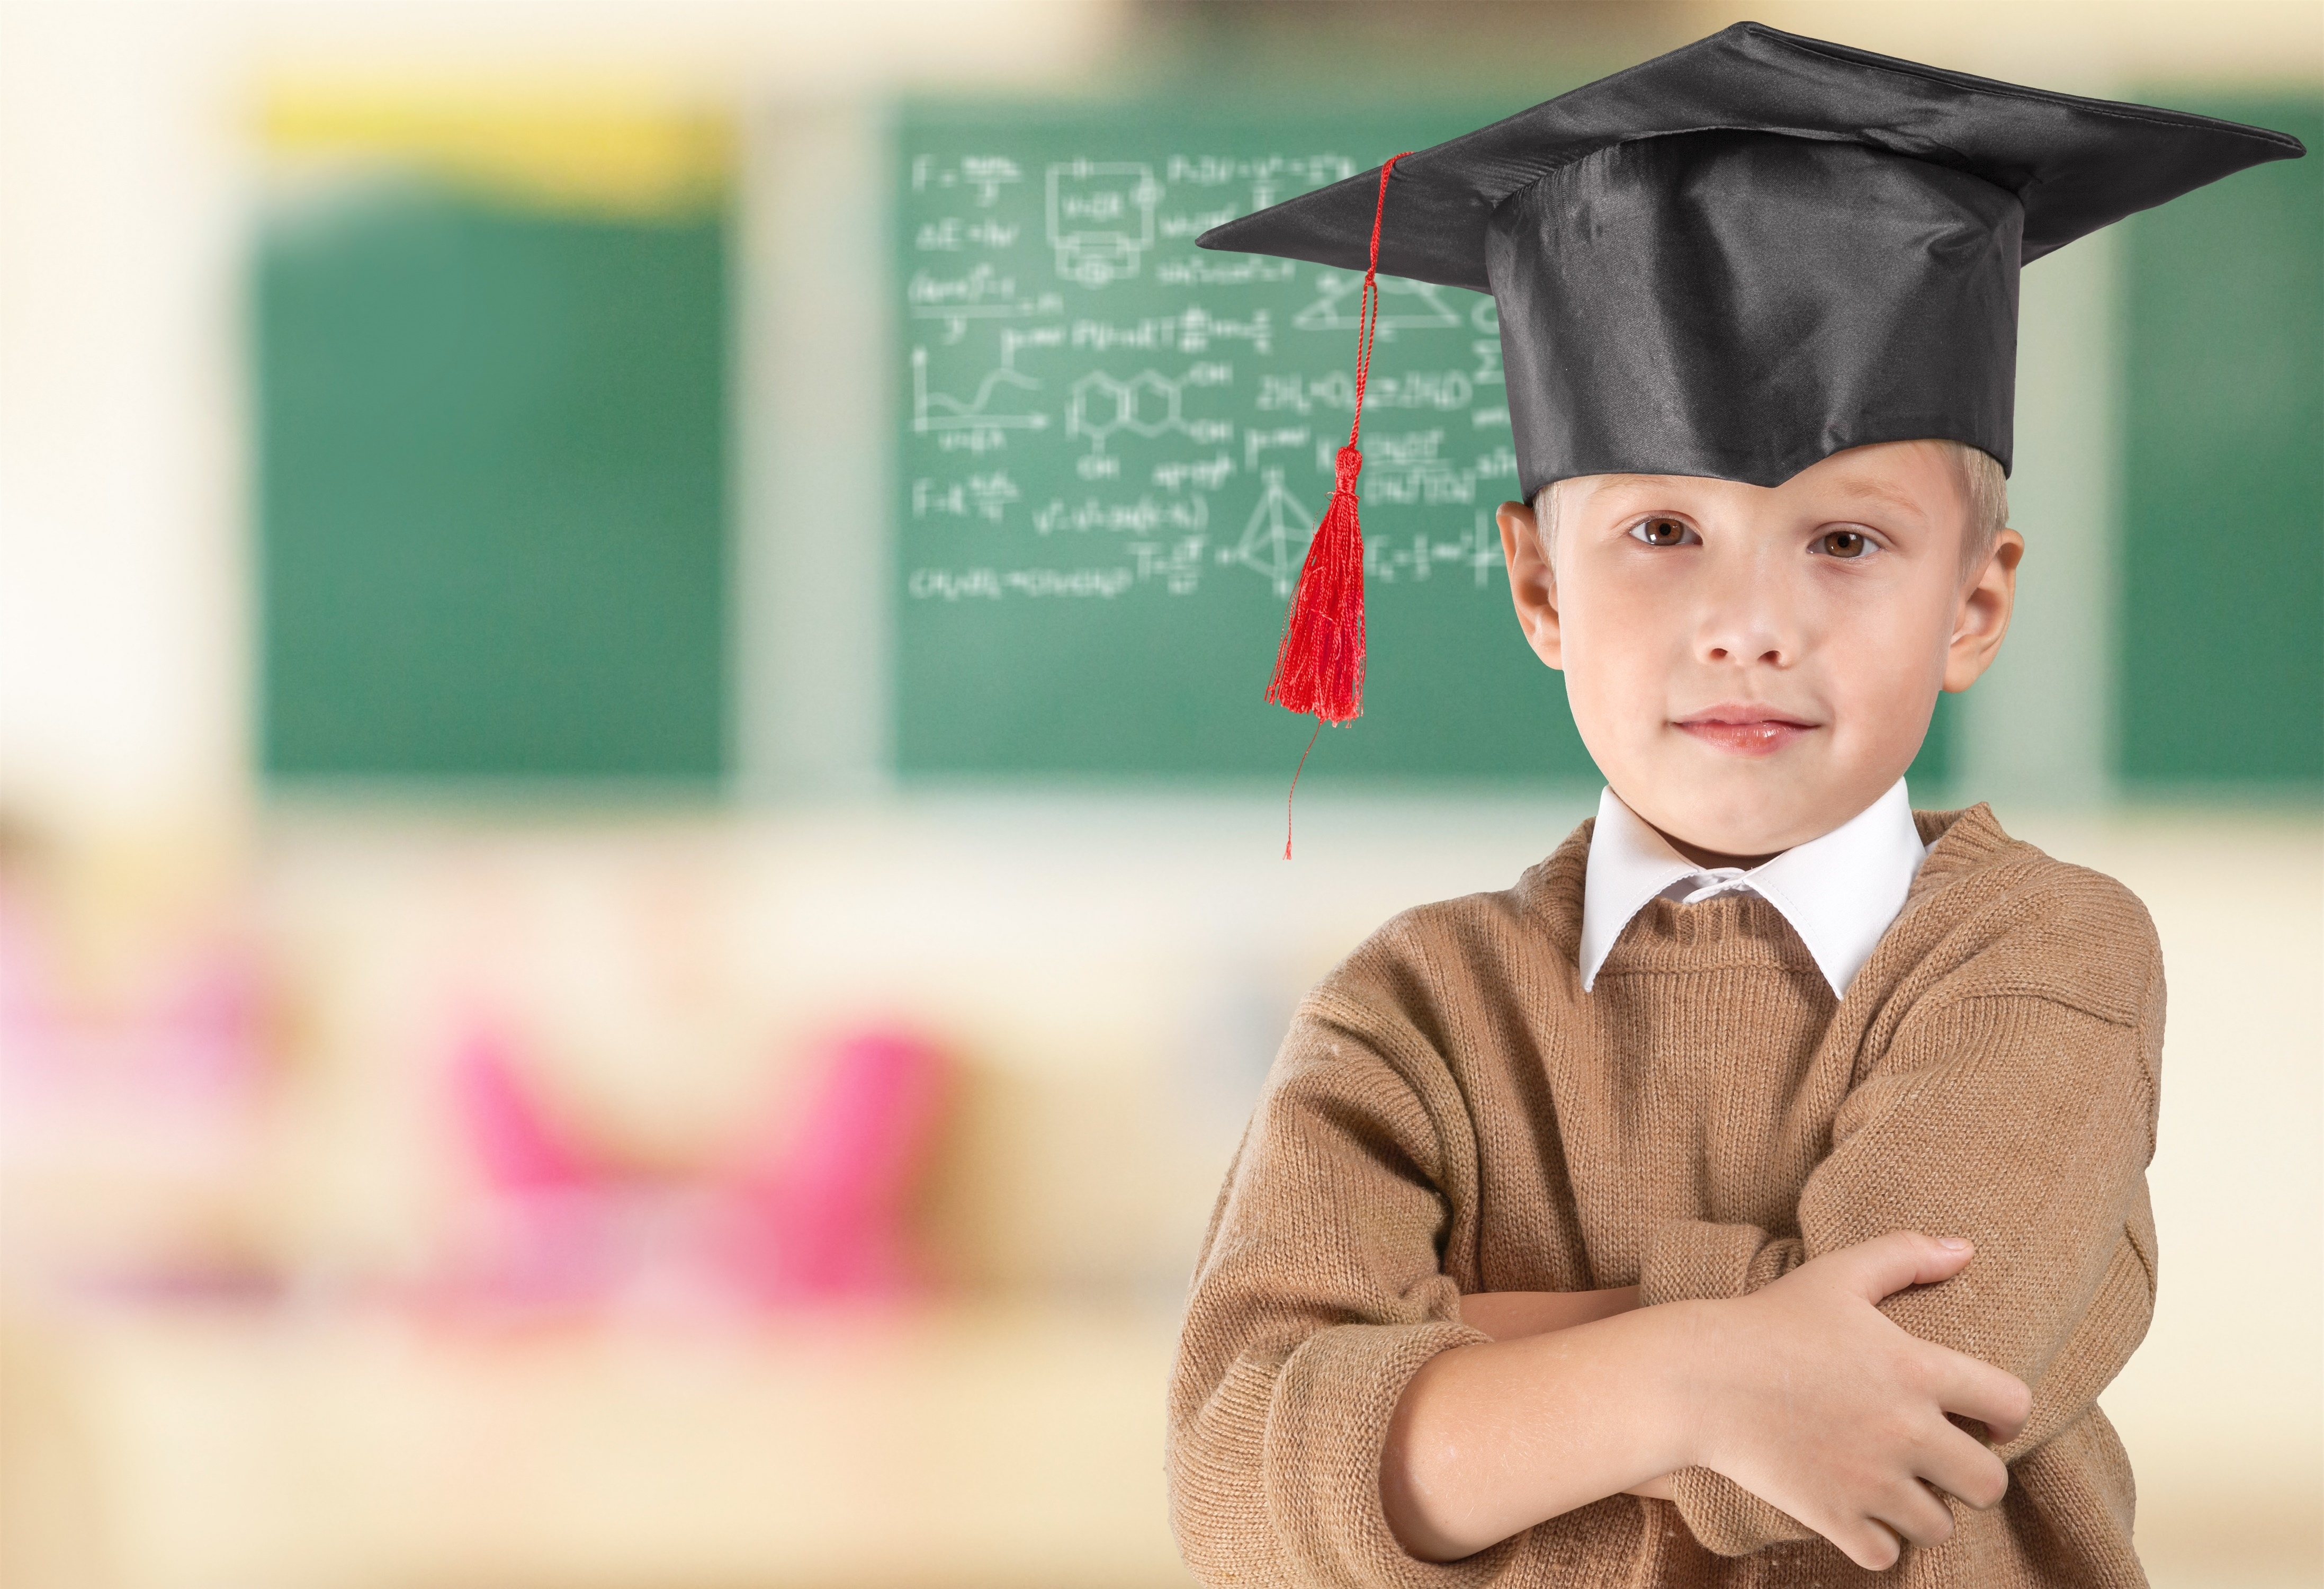 Young Boy In Graduation Cap With Green Blackboard Behind Him